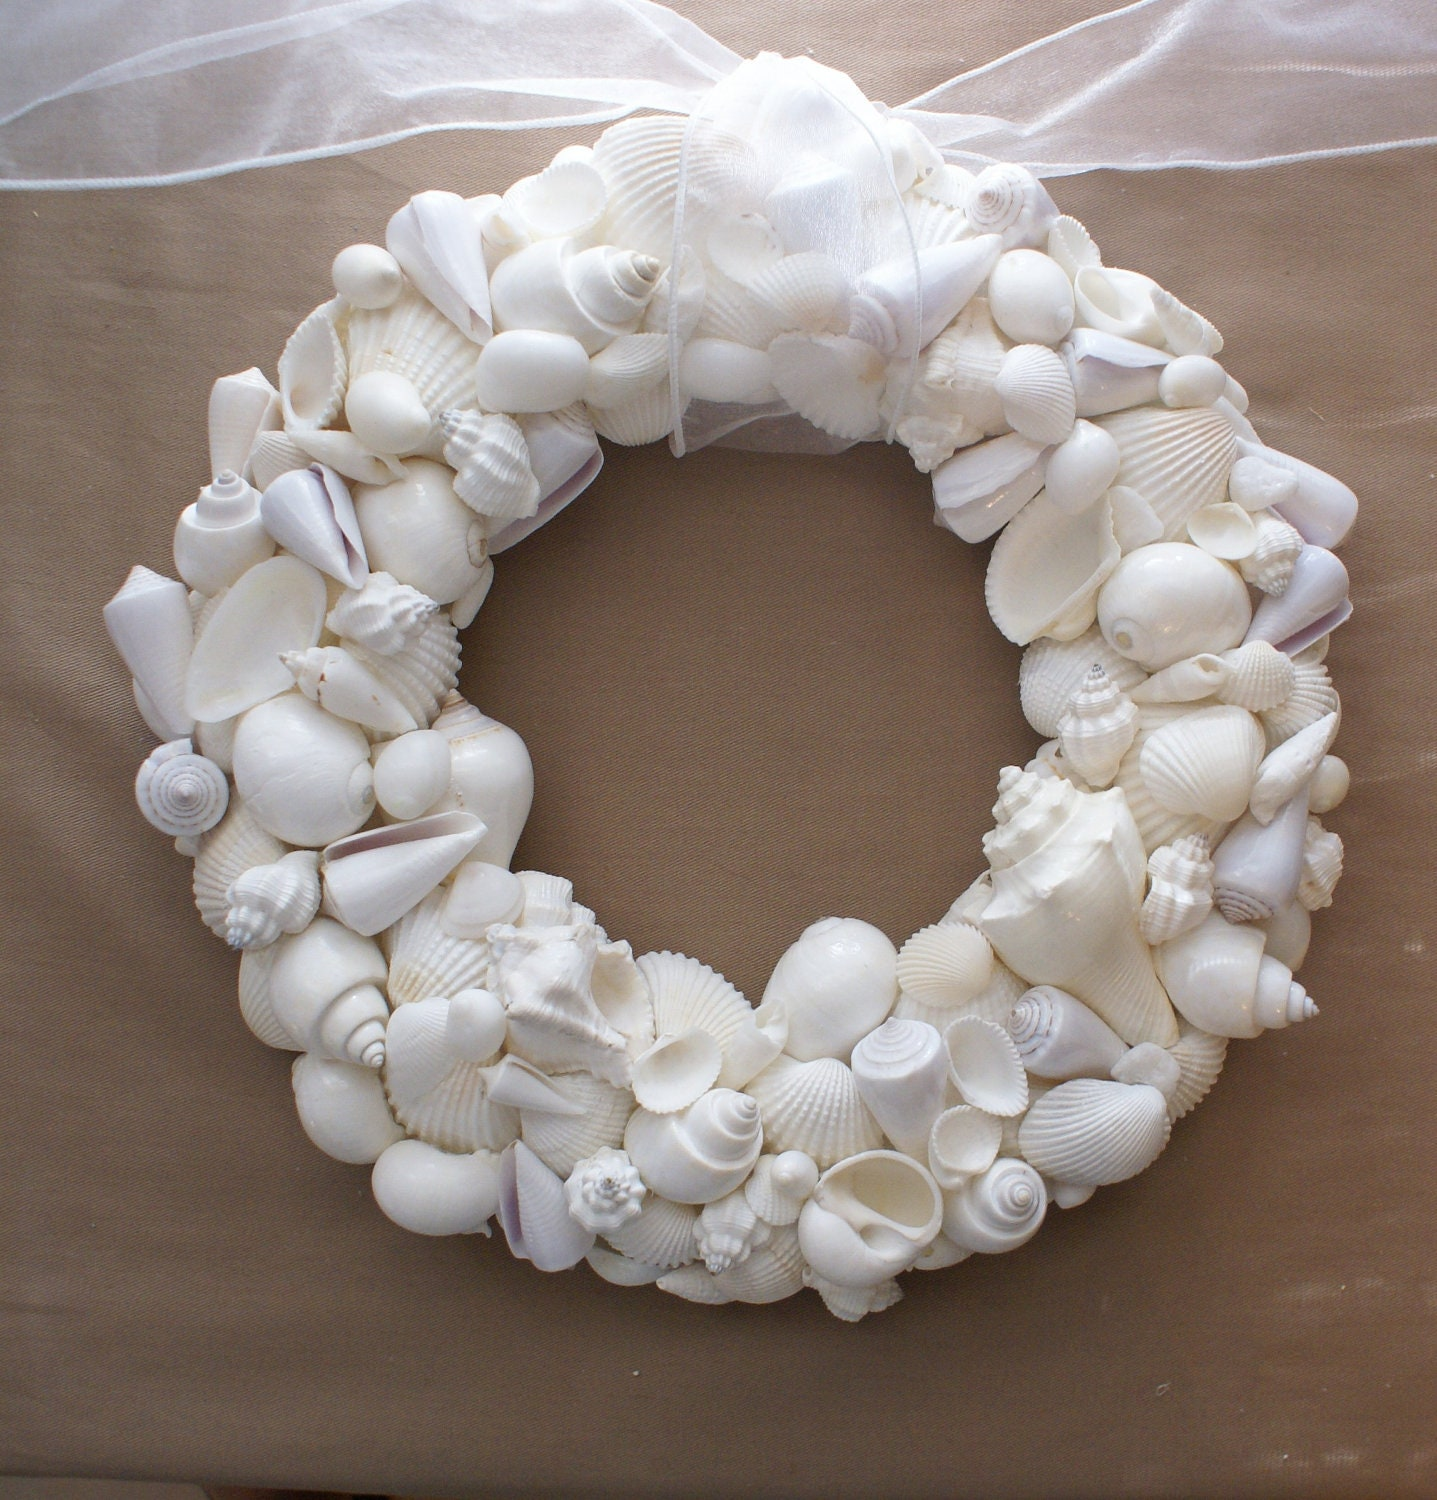 Seashell Wreath 12 Inches White Wedding